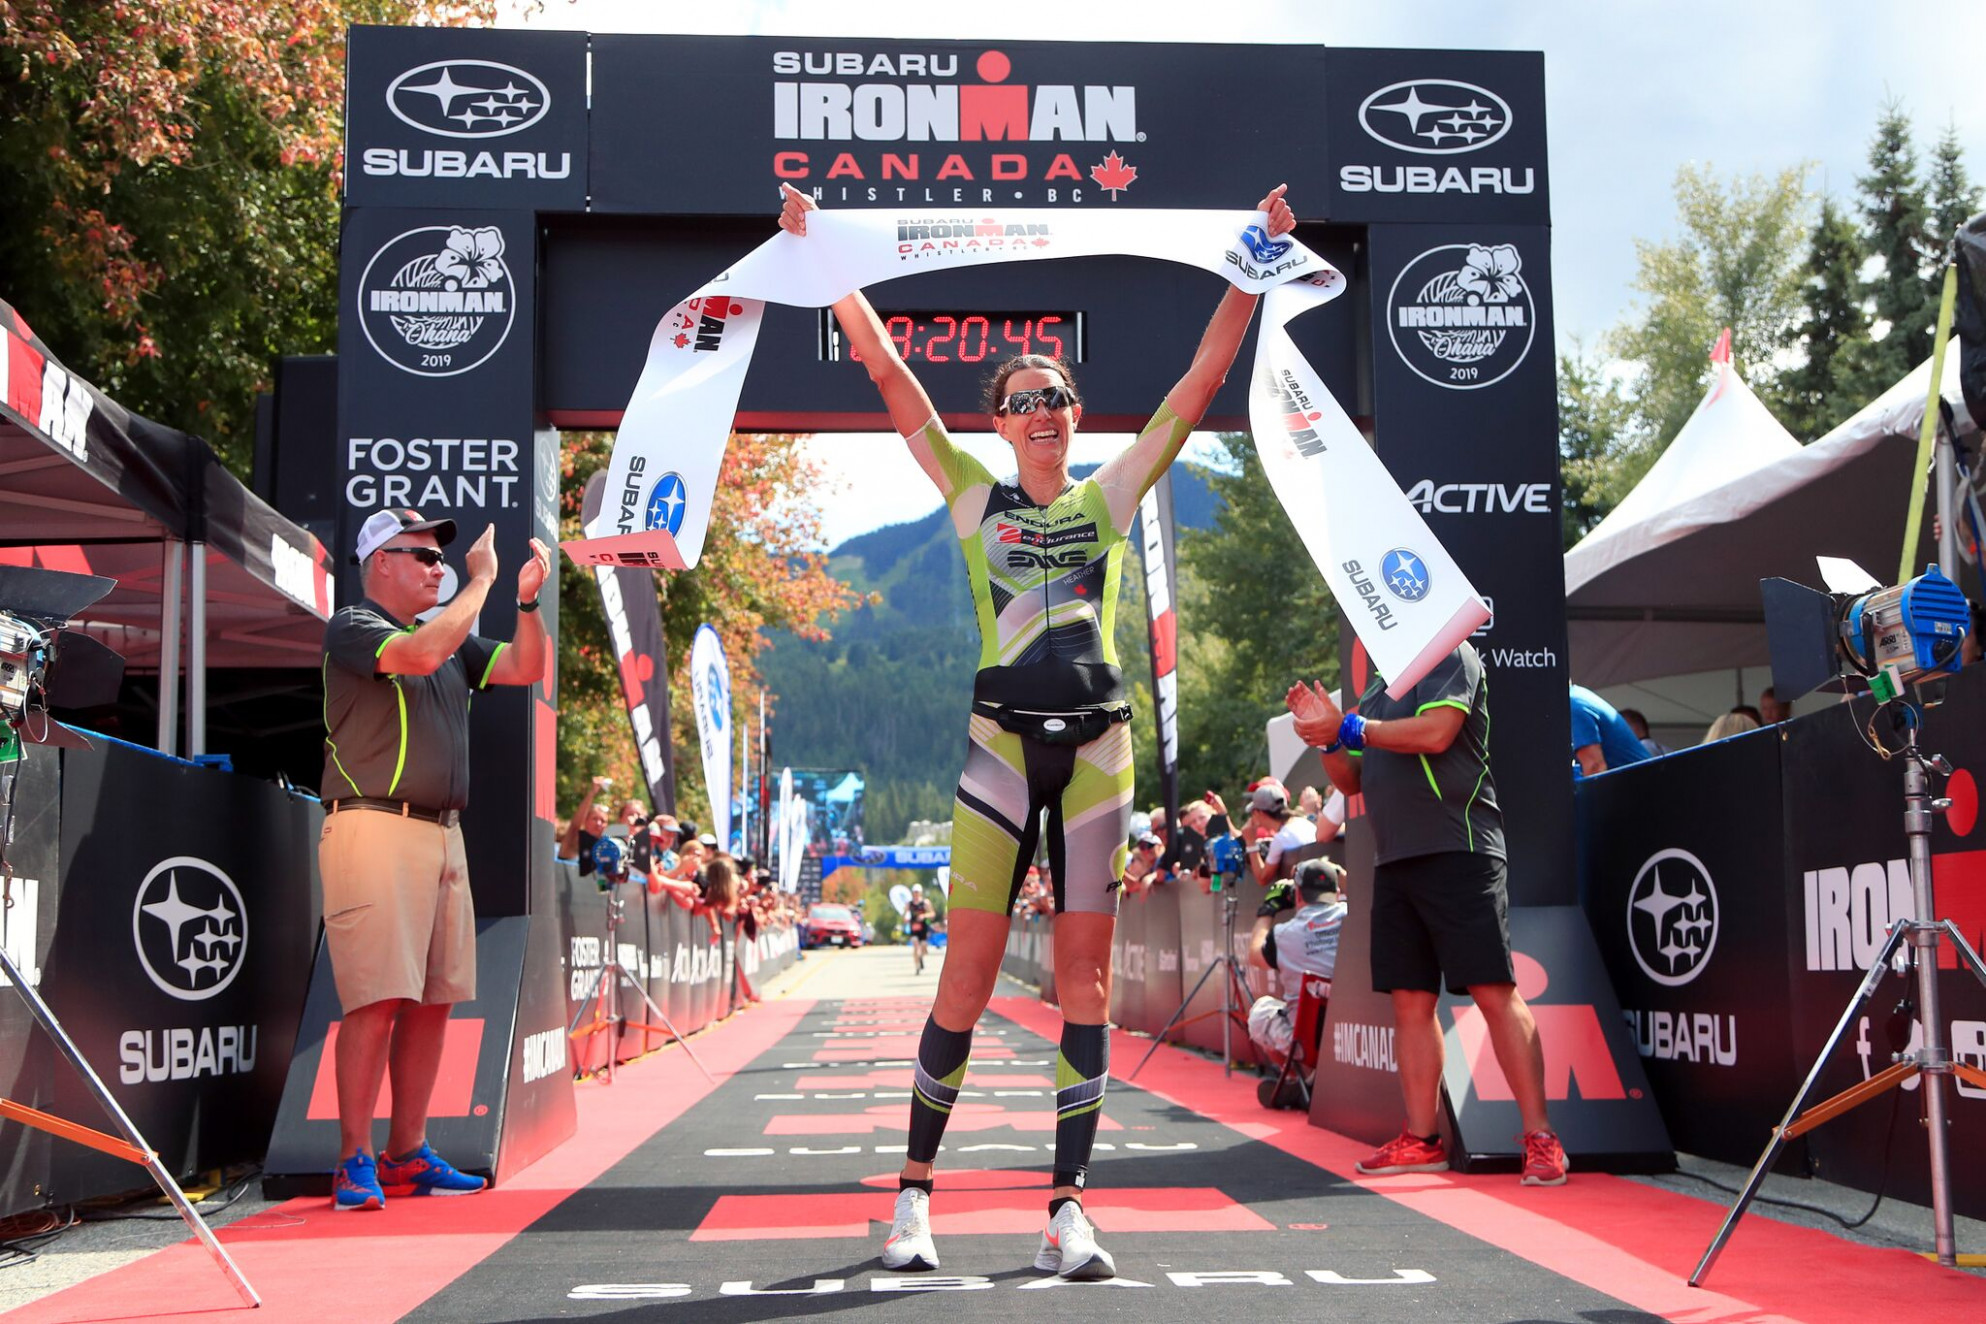 Heather Wurtele claims victory at 8 IRONMAN CANADA - AsiaTRI ..